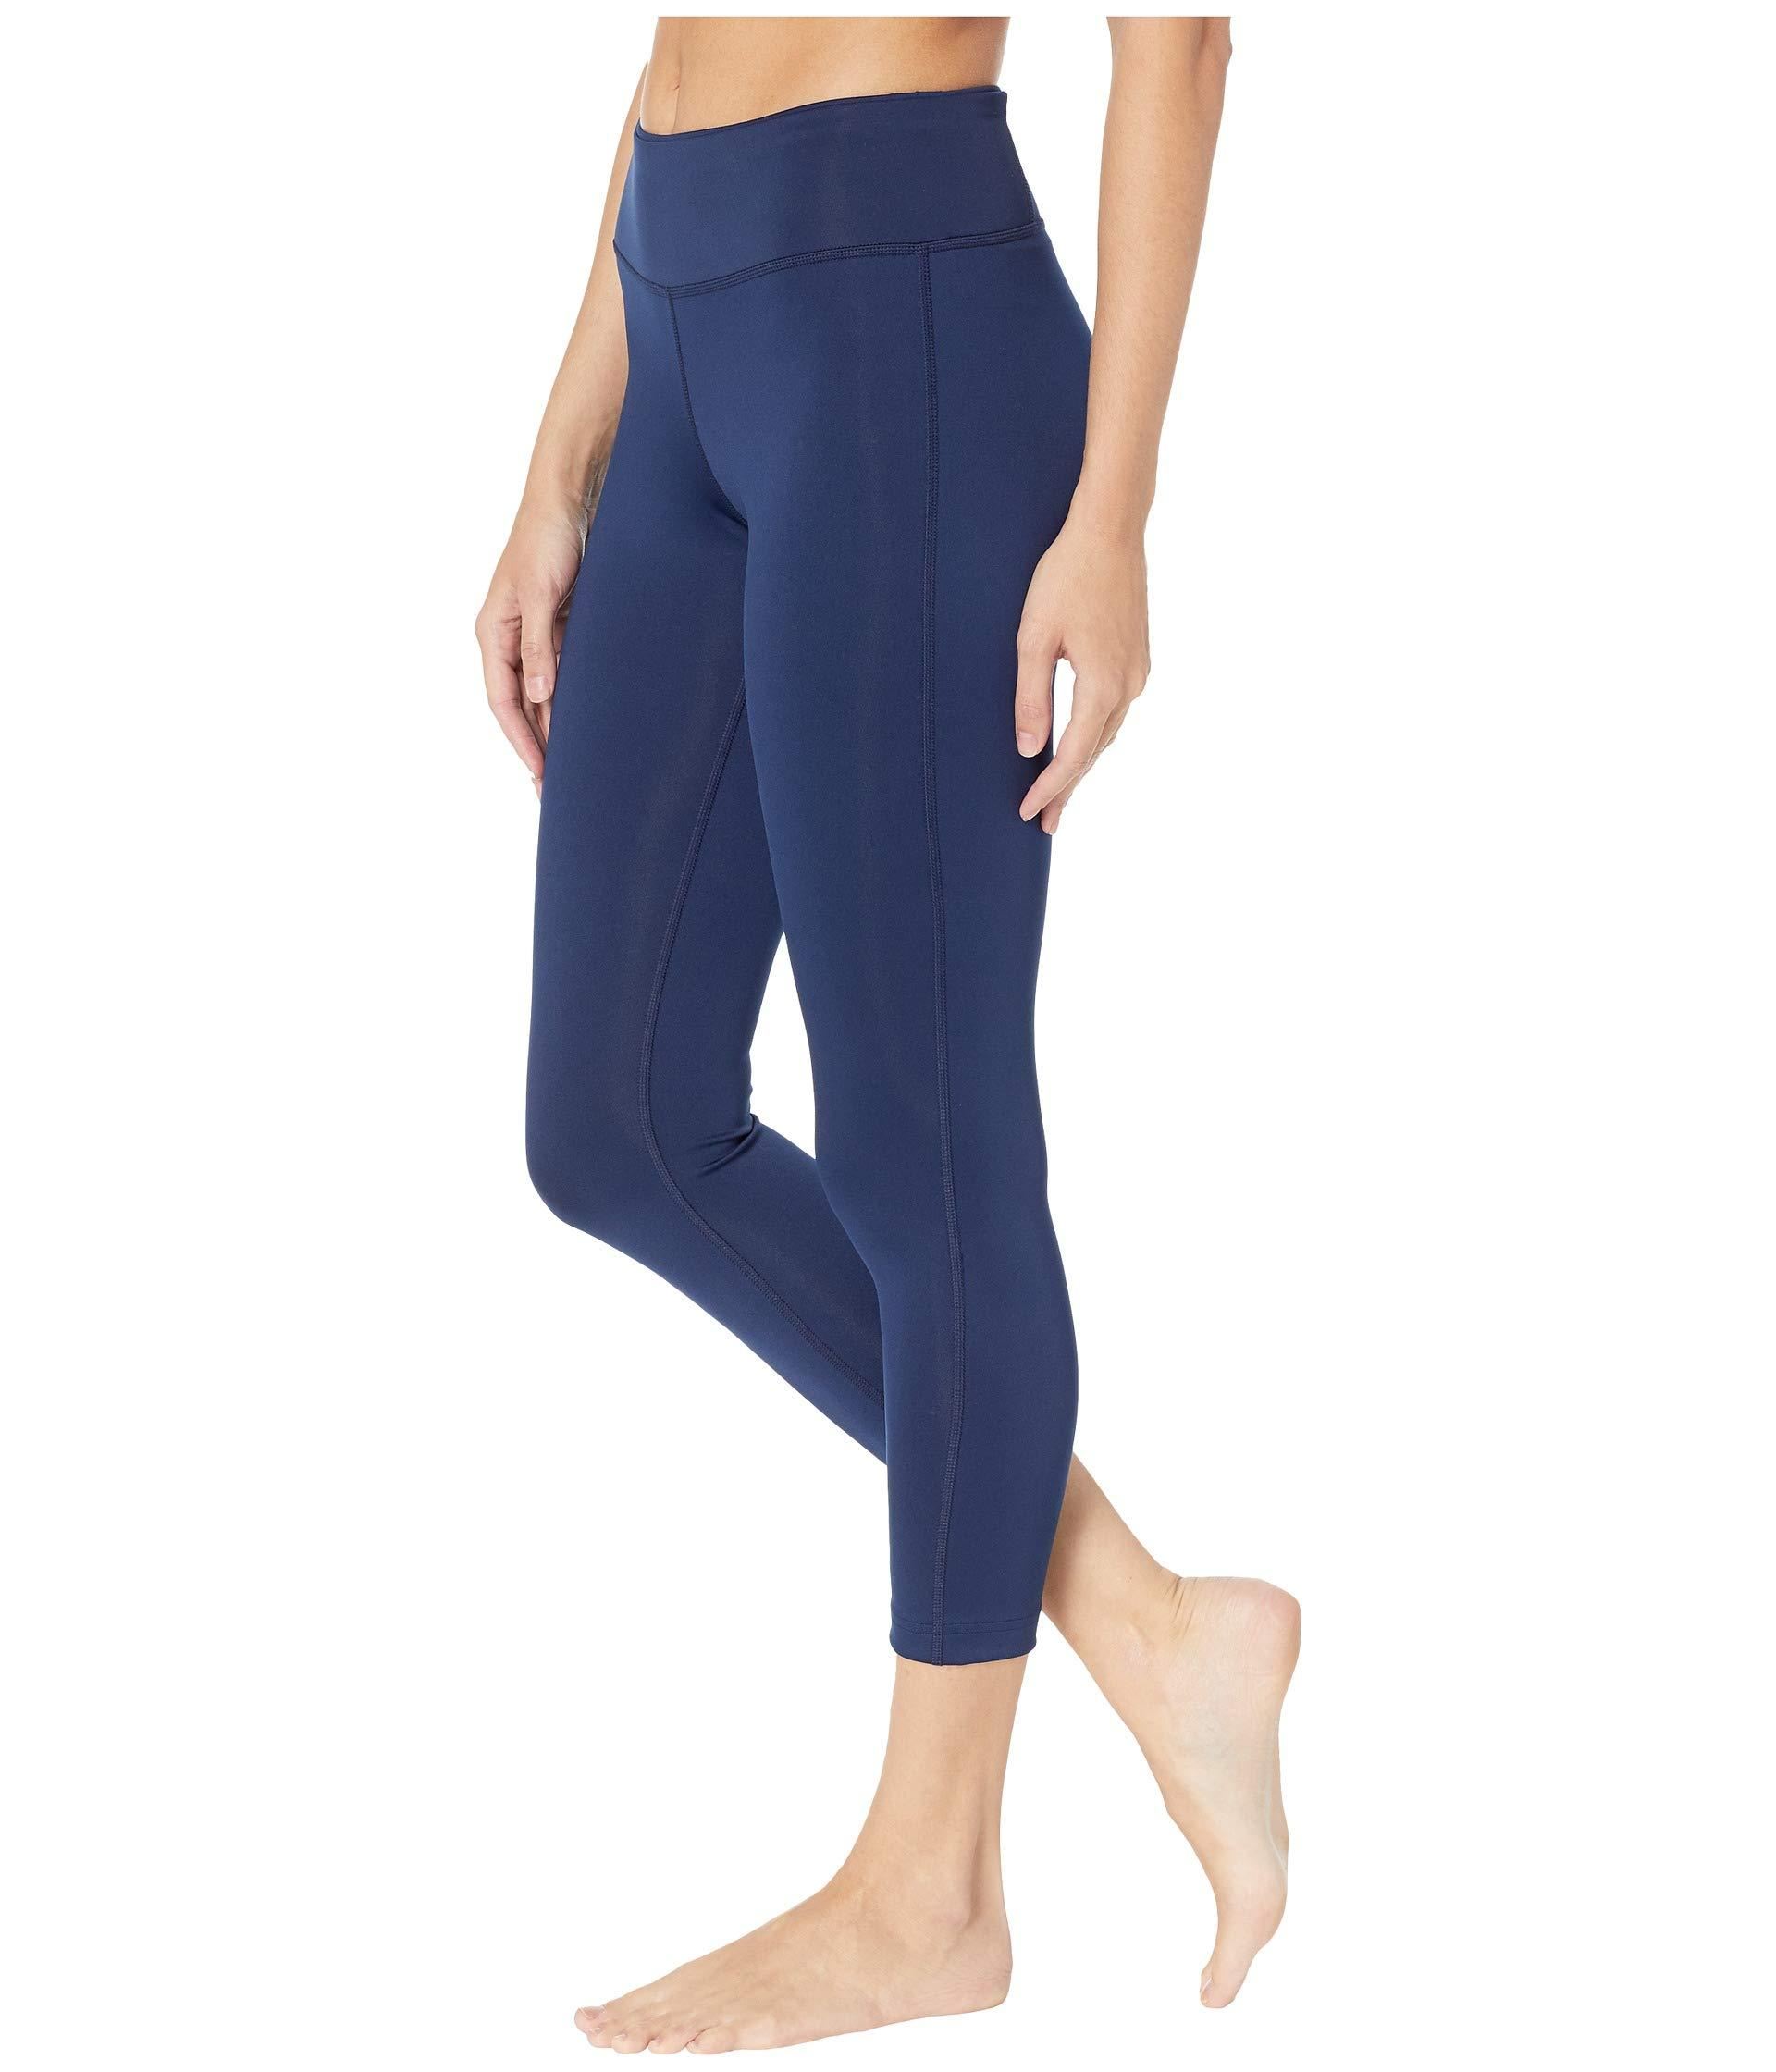 a5416b4bf9e Lyst - Reebok Workout Ready 7 8 Tights in Blue